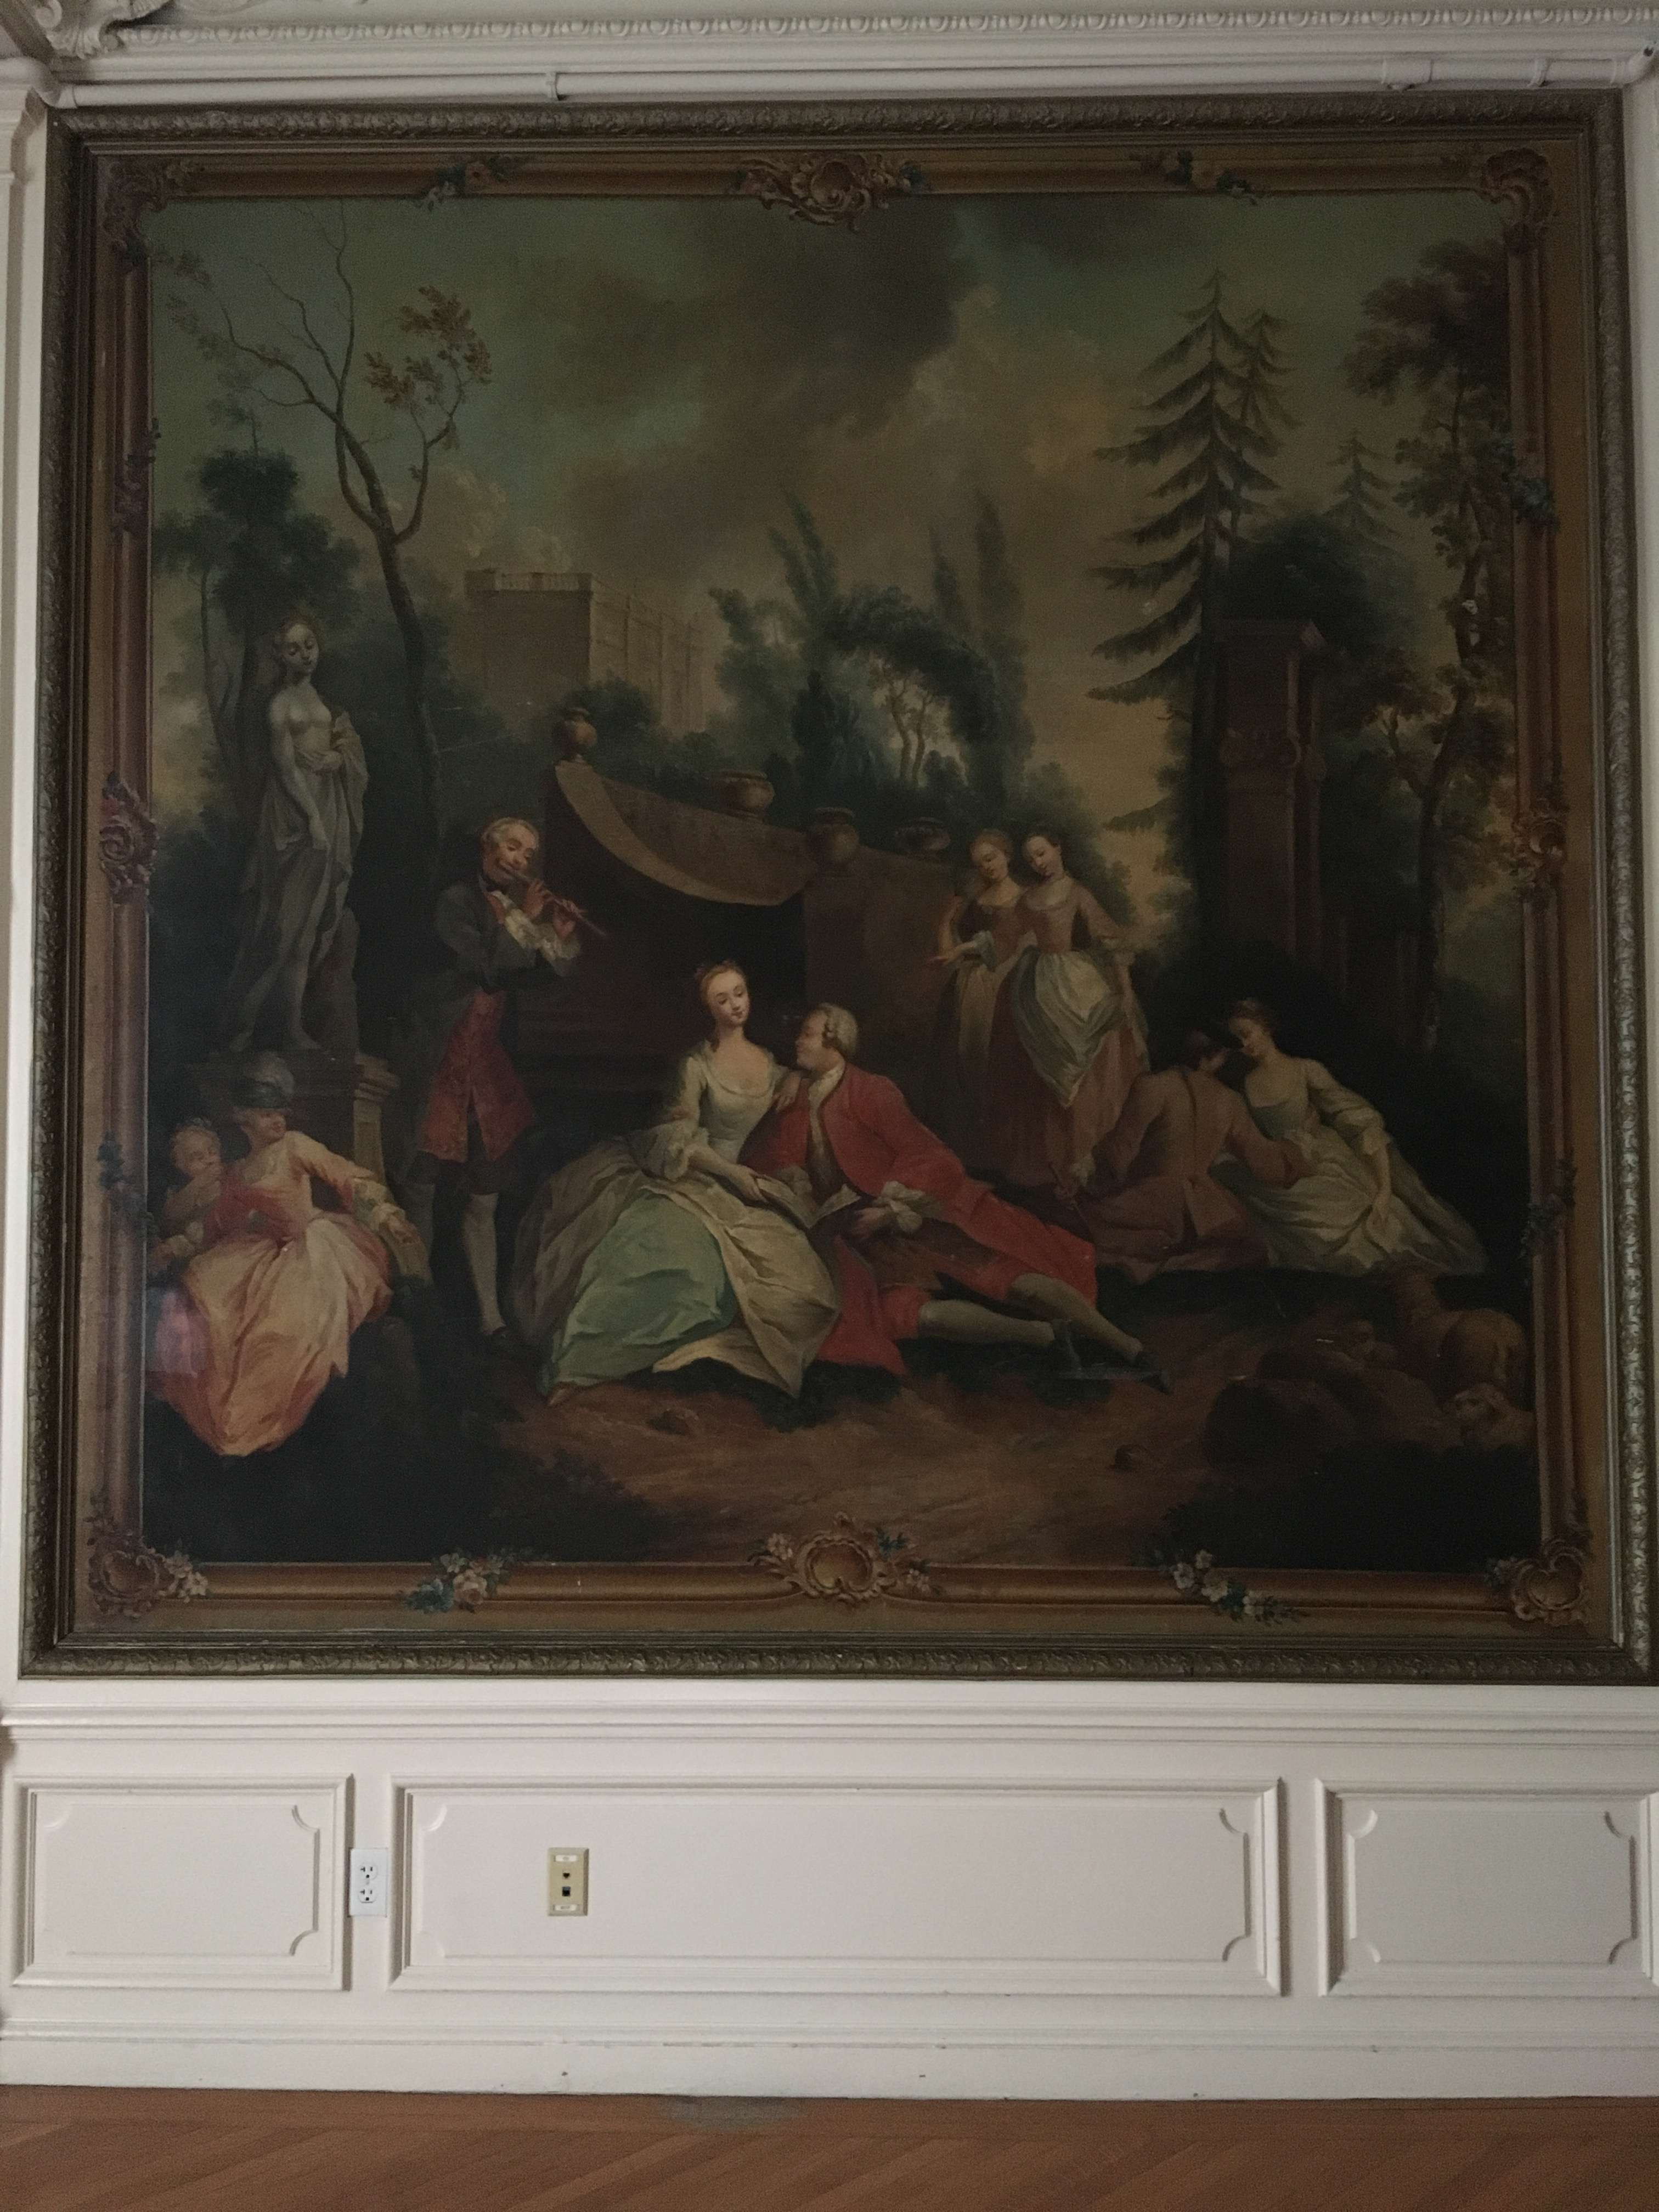 These are one of the many oil paintings that adorn the walls and ceilings of Fairlawn.